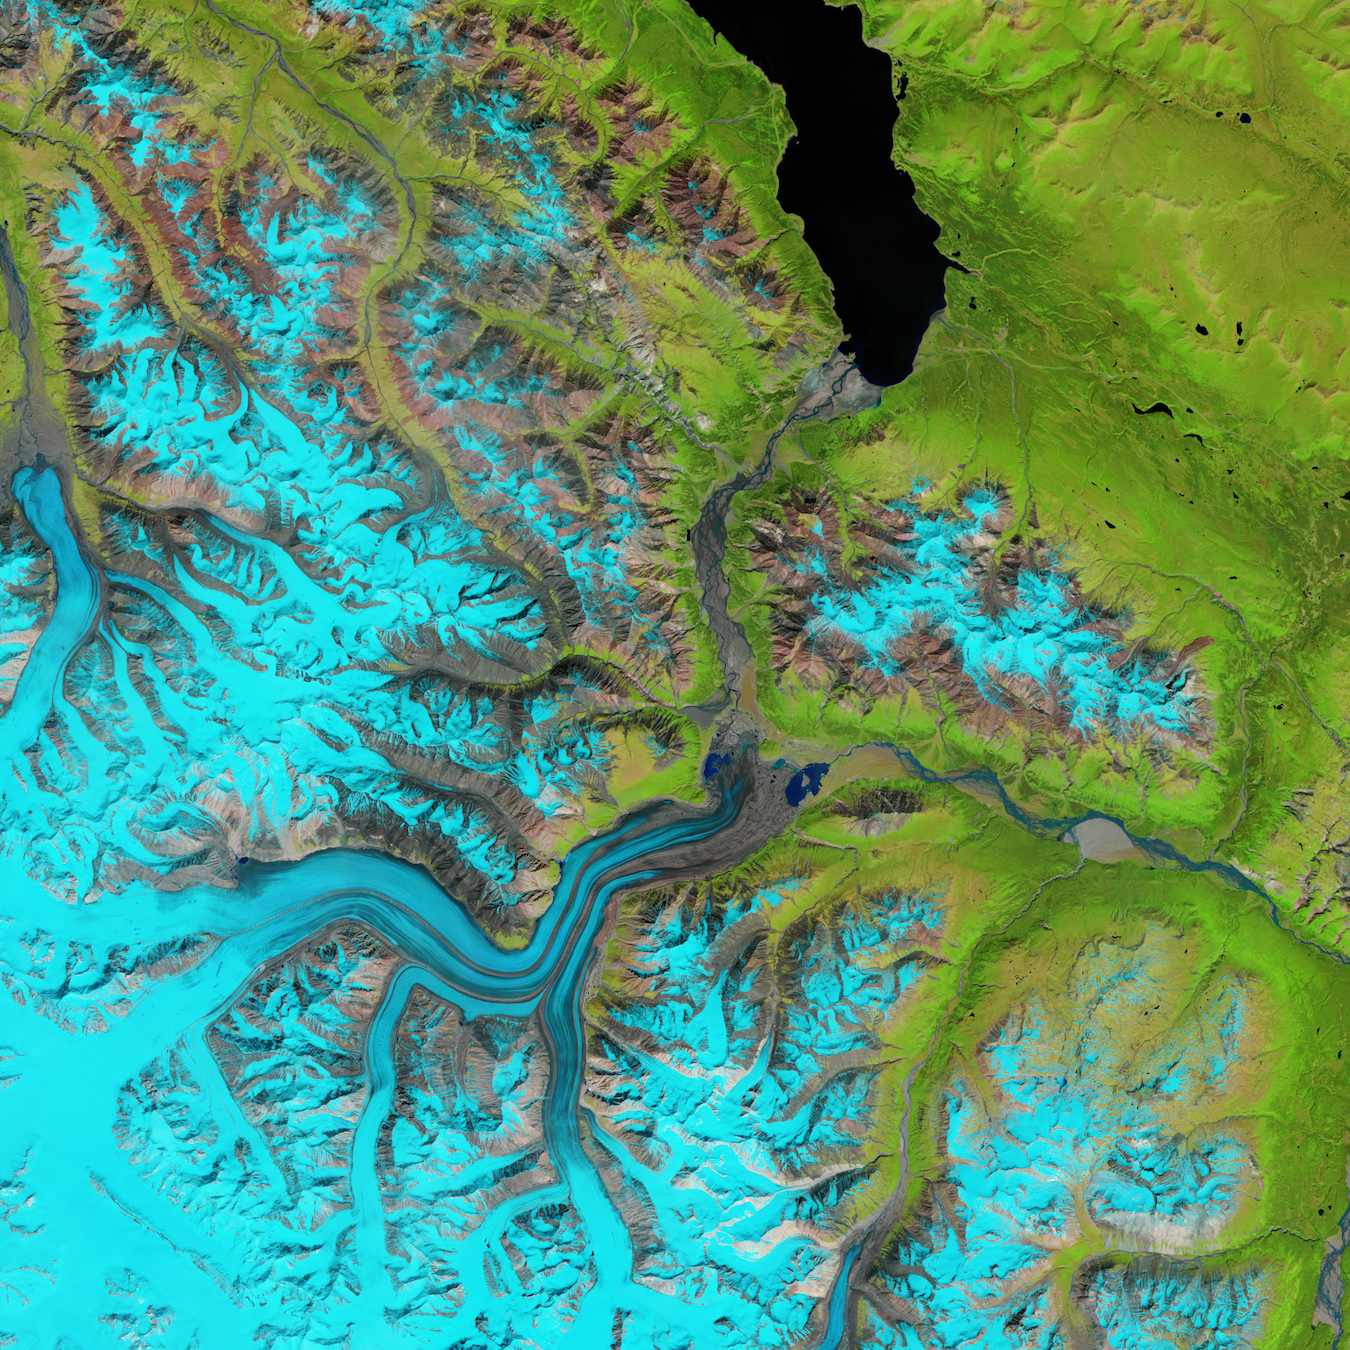 Today's Image of the Day comes thanks to the NASA Earth Observatory and features a look at the Kaskawulsh River and Slims River in the Canadian Yukon.